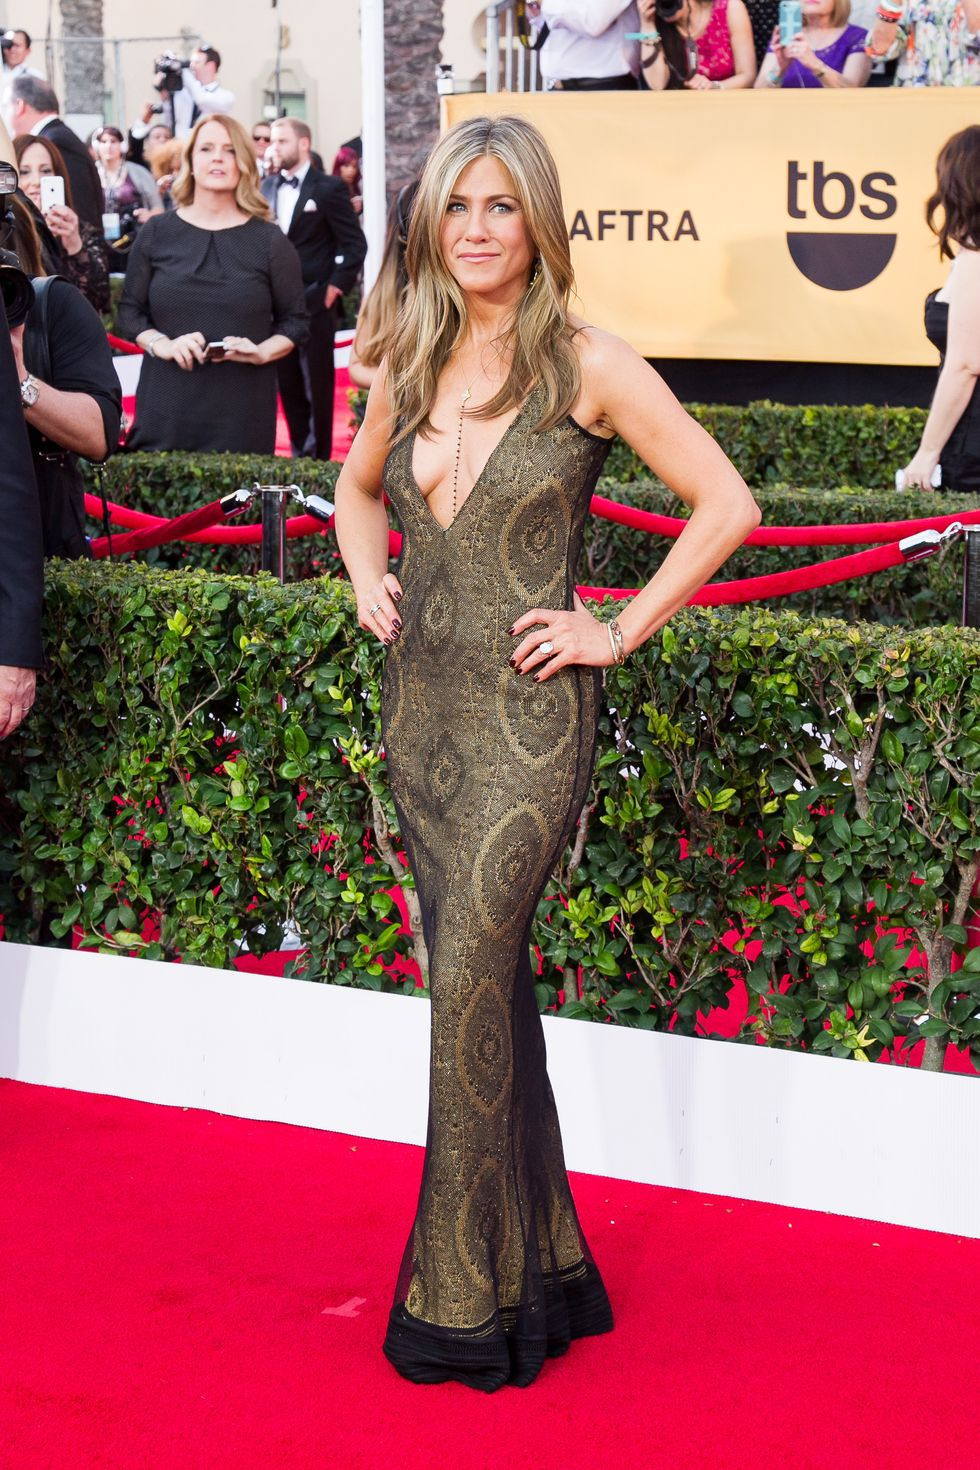 The Best and Worst Celebrity Fashion at the SAG Awards